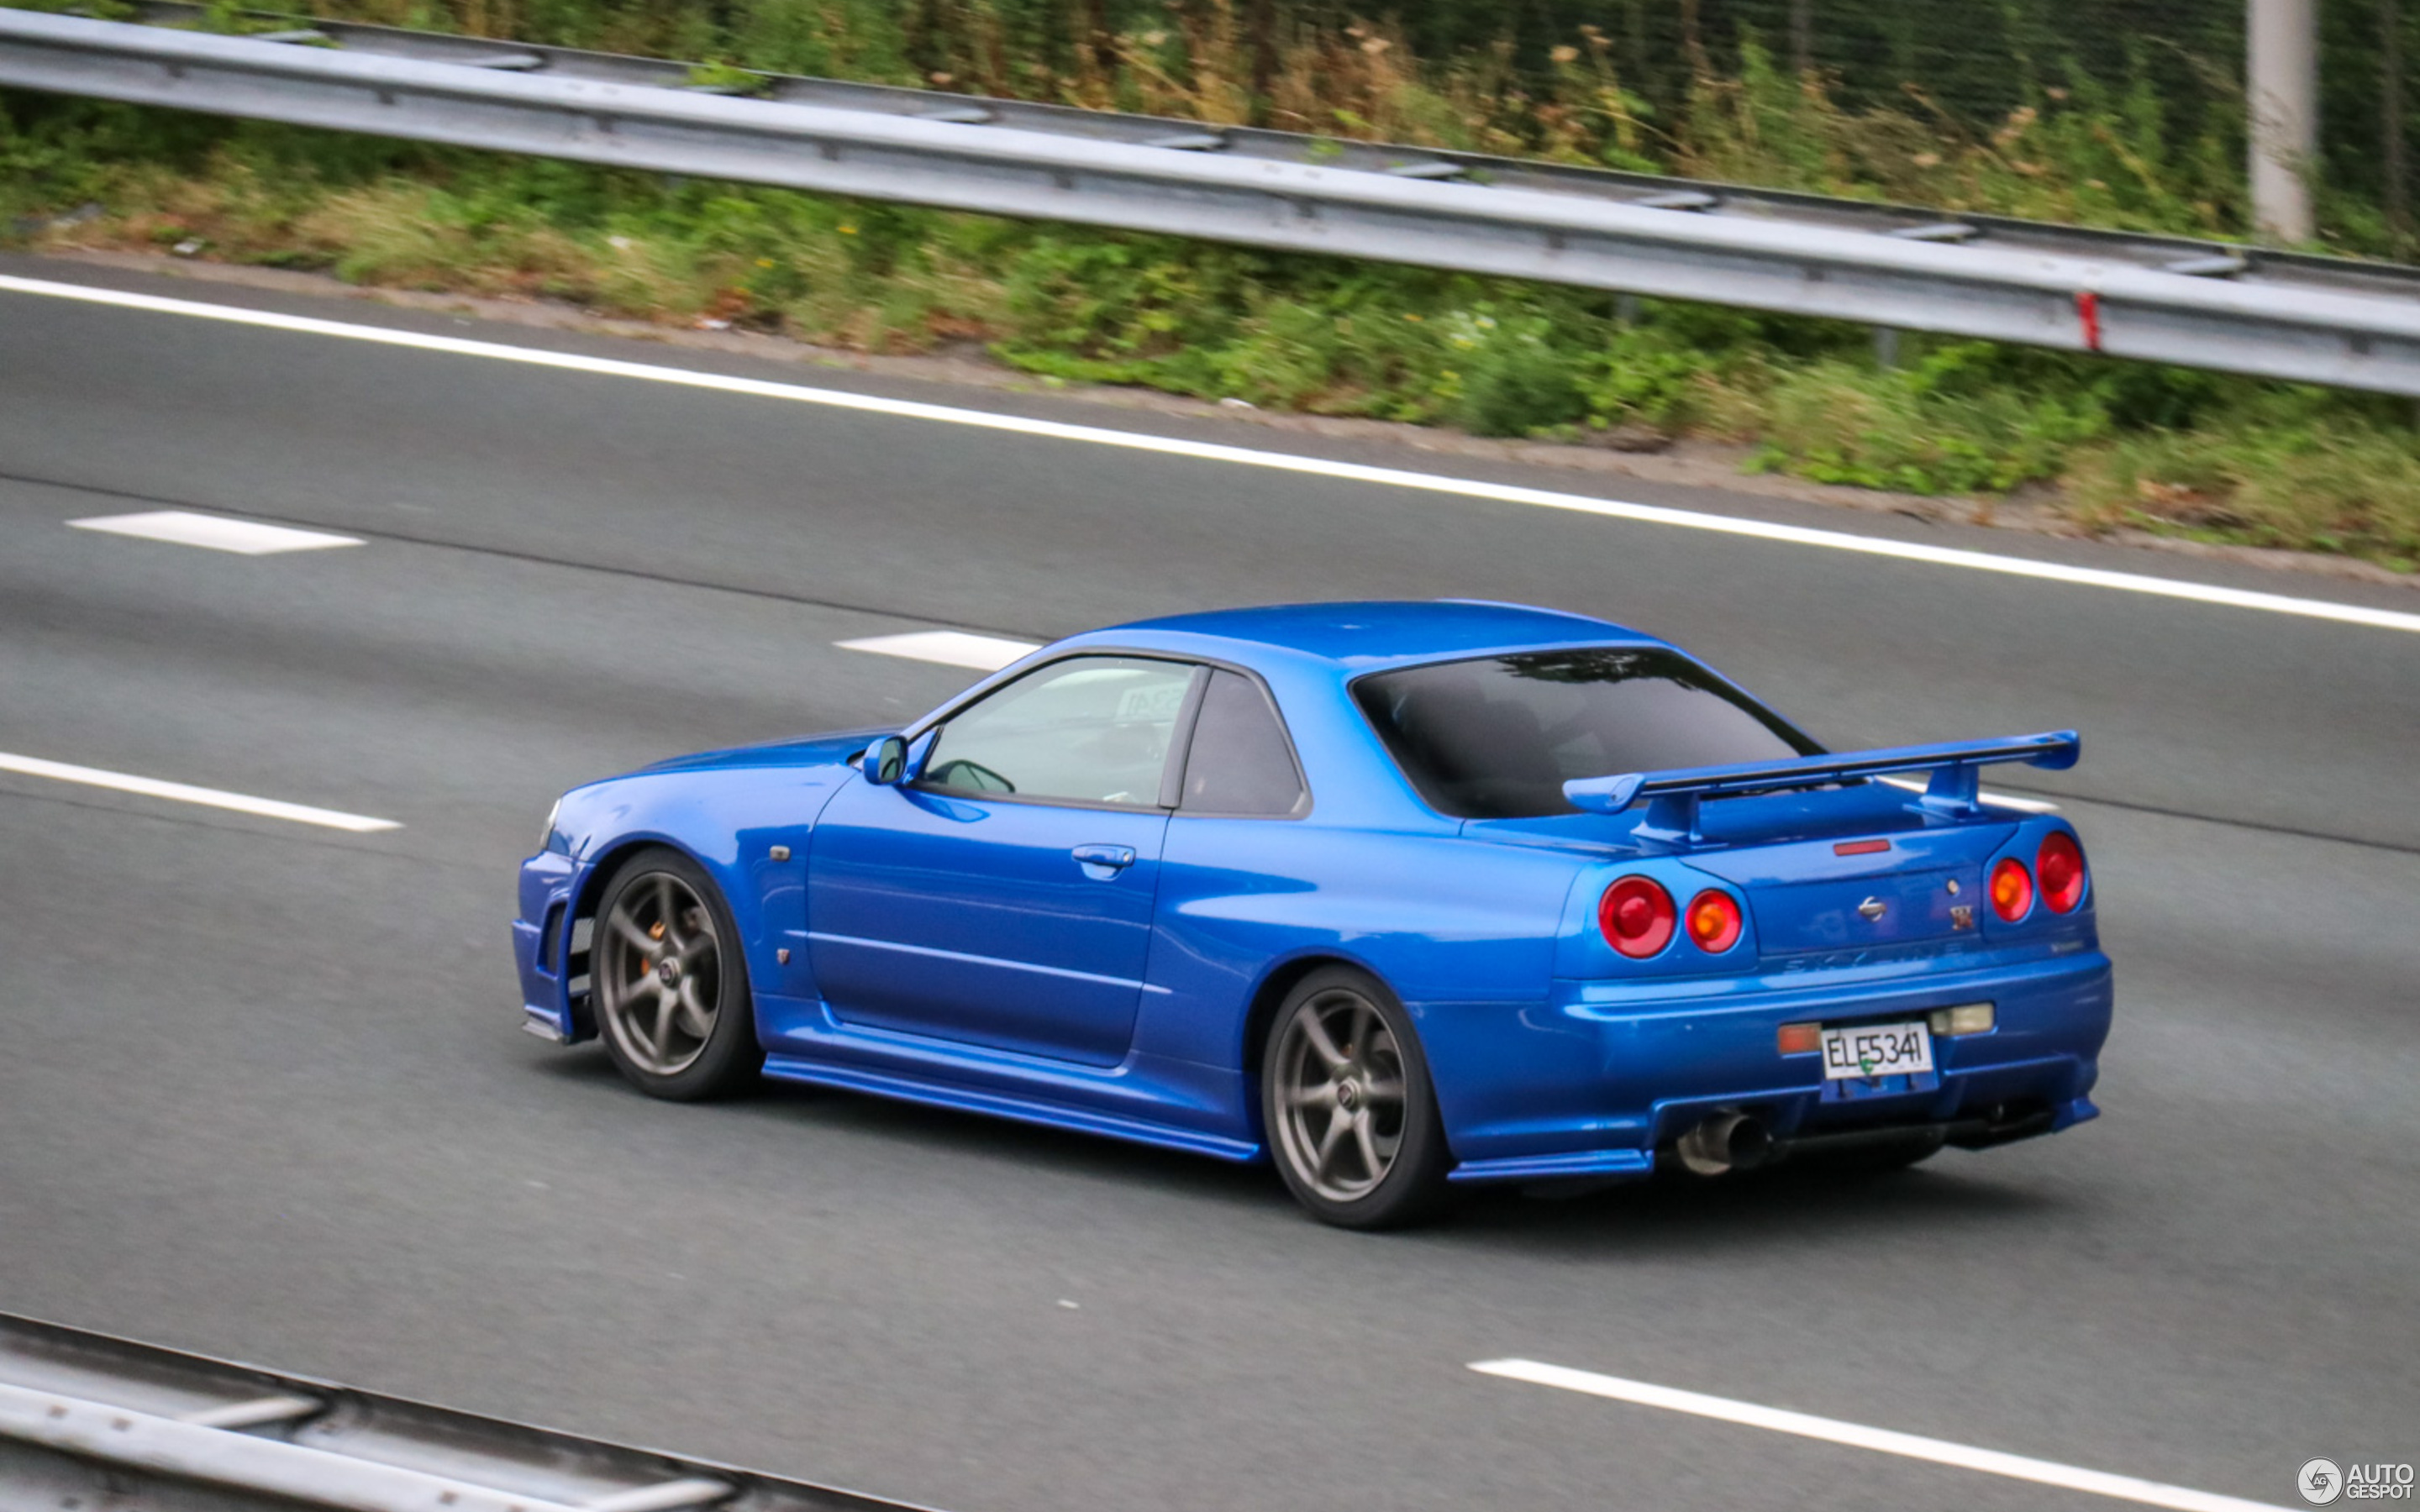 Nissan Skyline R34 GT-R - 20 February 2019 - Autogespot